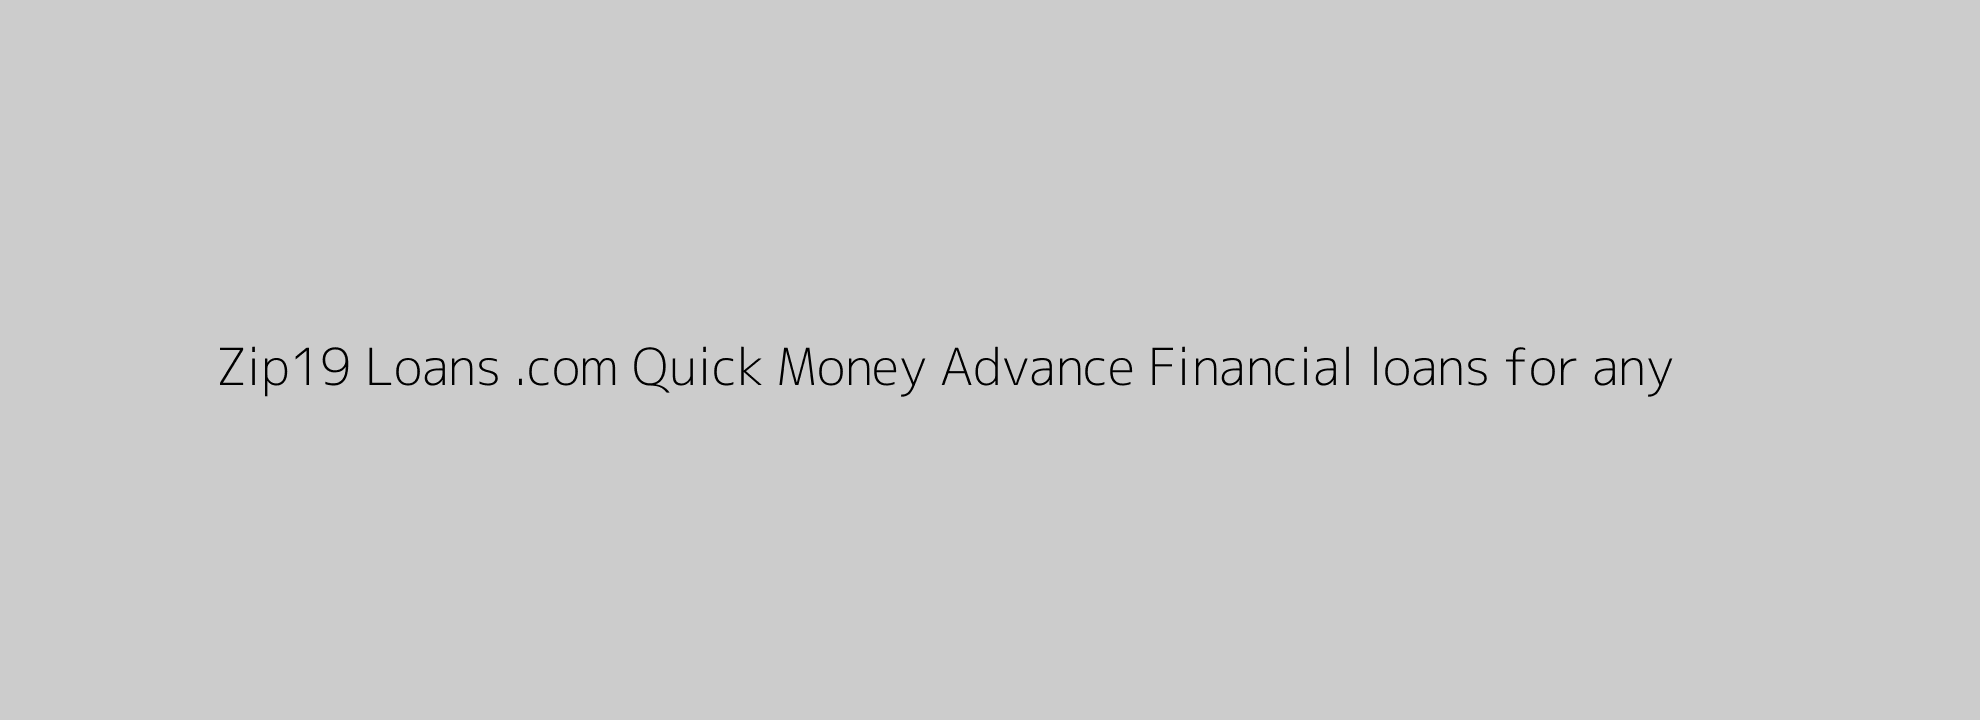 Zip19 Loans .com Quick Money Advance Financial loans for any